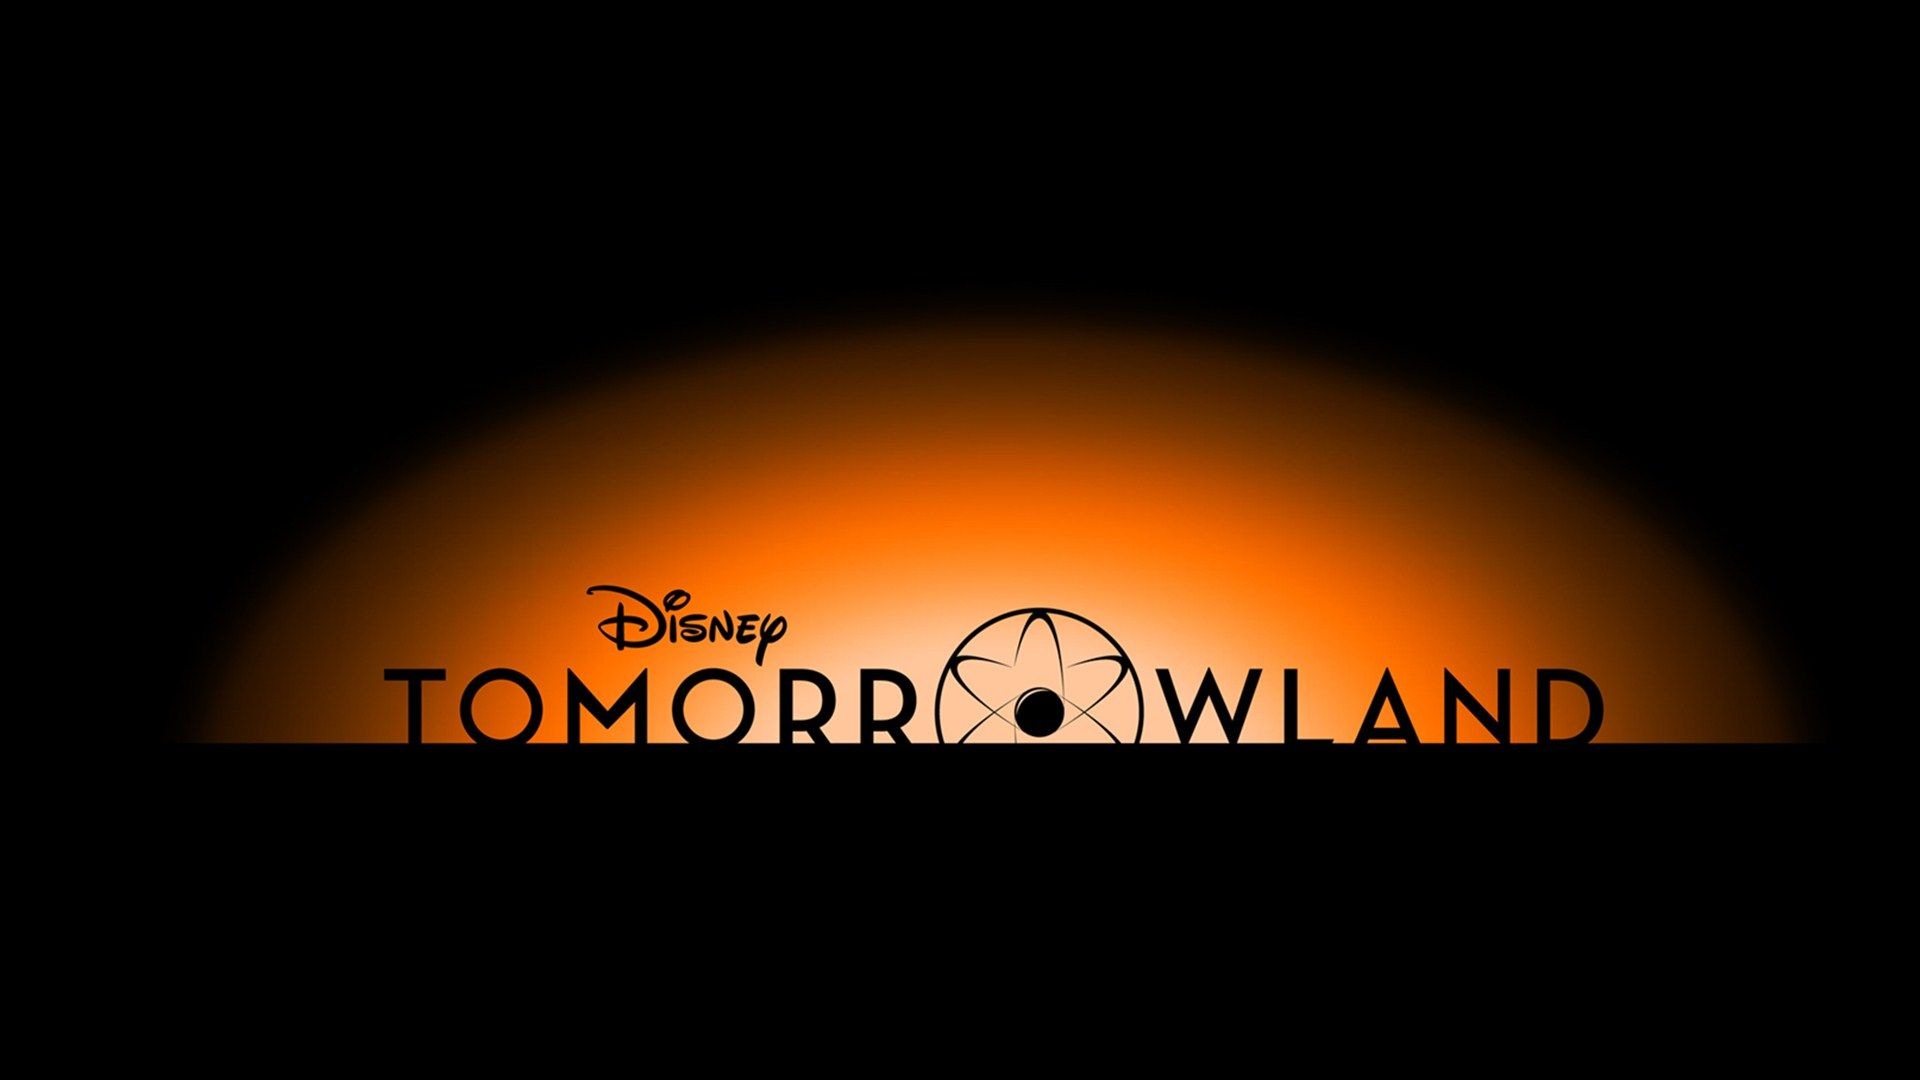 Disney Tomorrowland Confessions Of A Disnerd Tomorrowland Movie Movie Wallpapers Photography Wallpaper